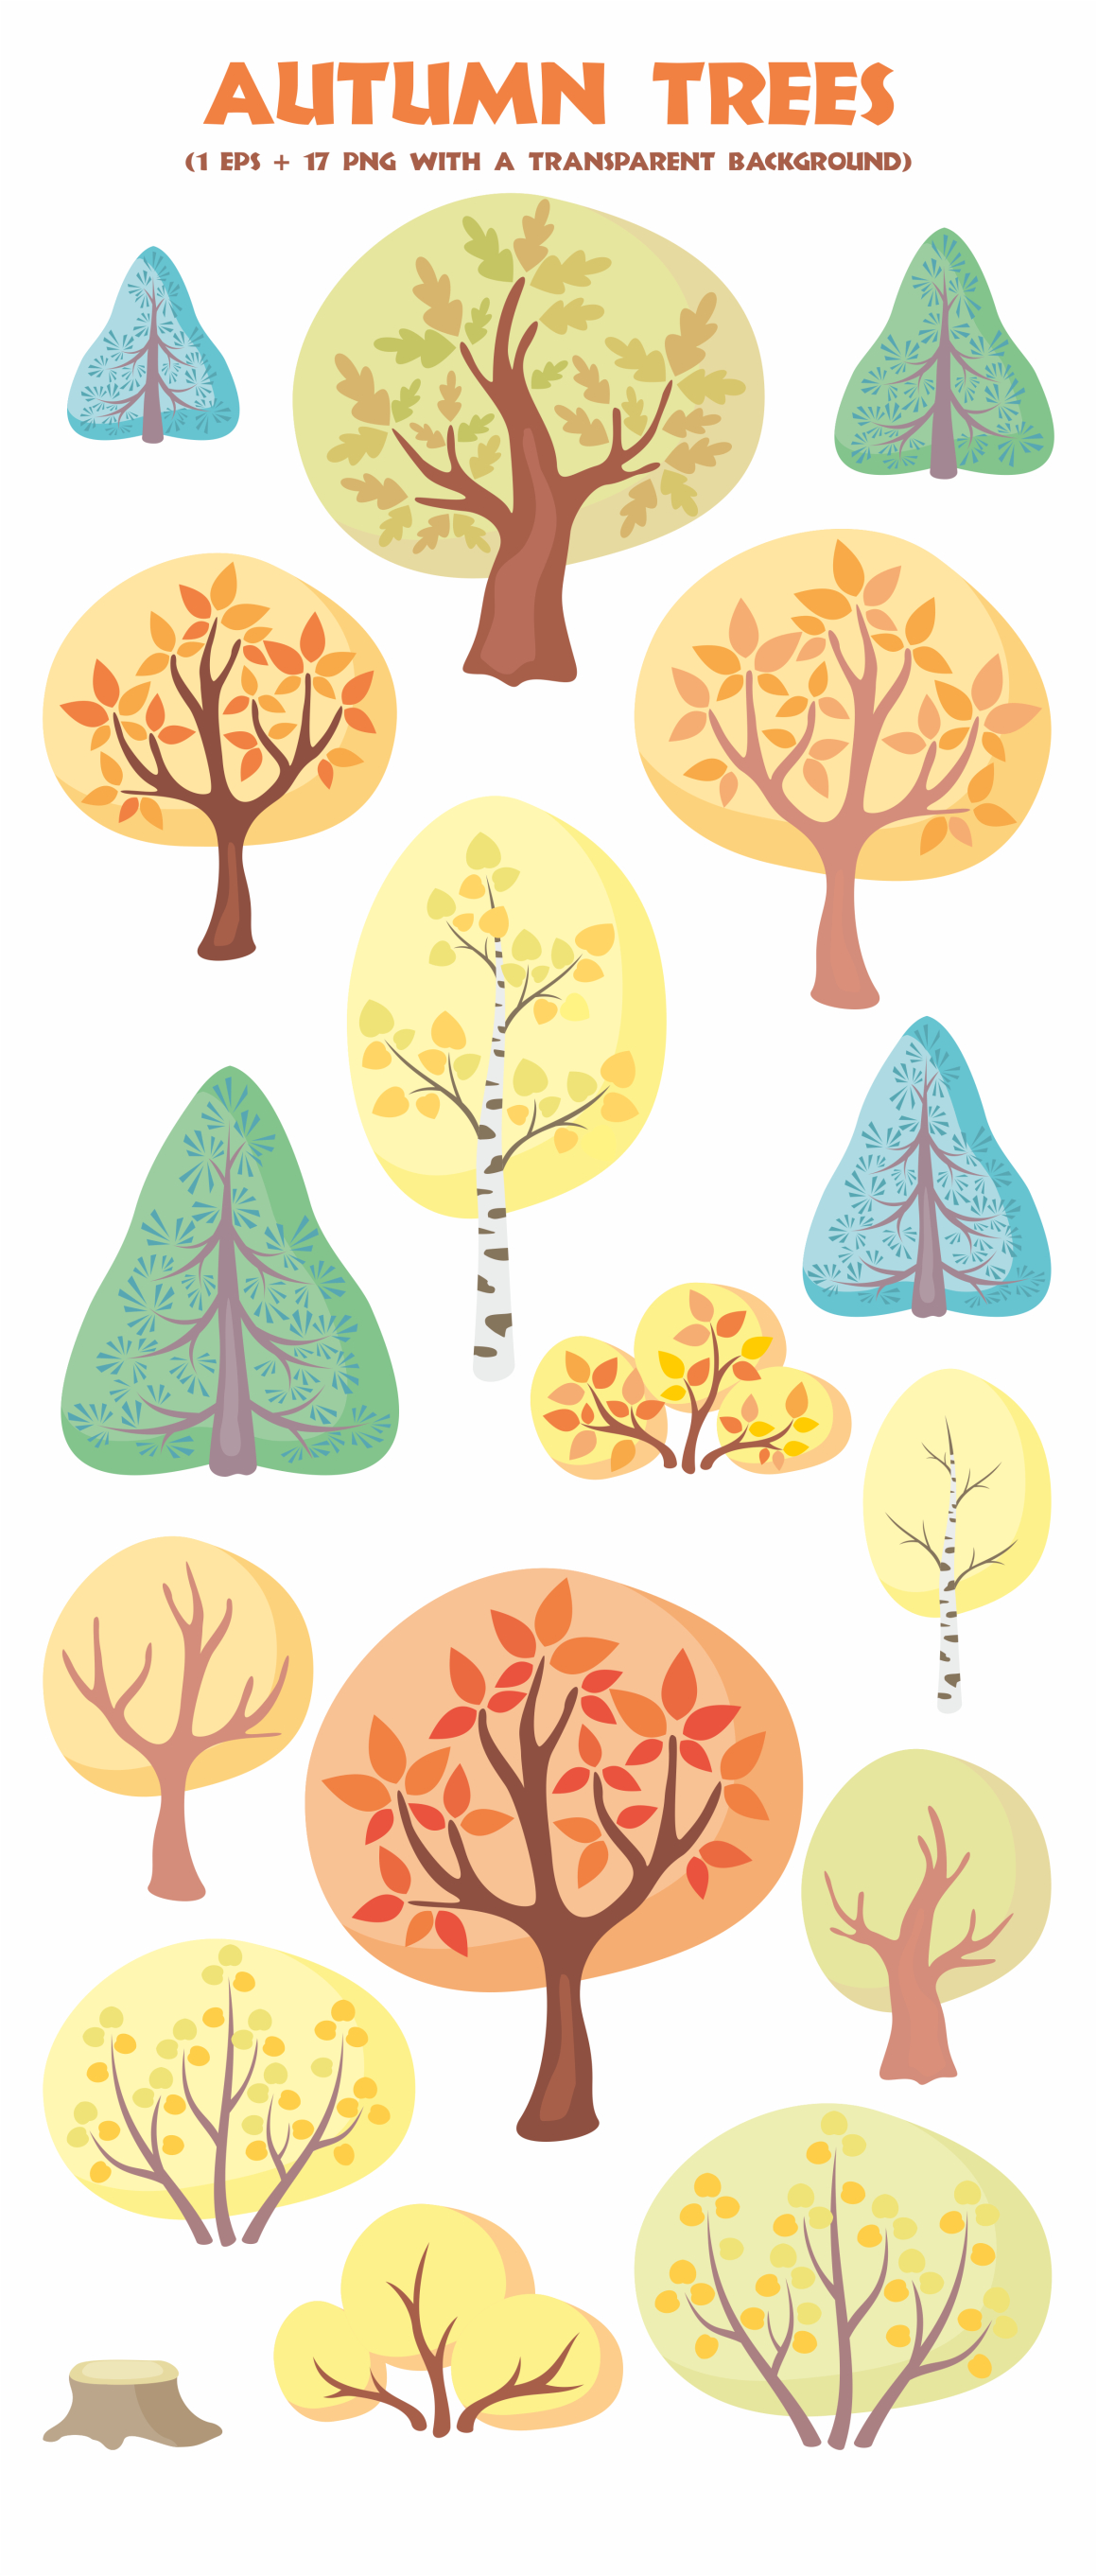 Autumn forest. Cute animals and plants.